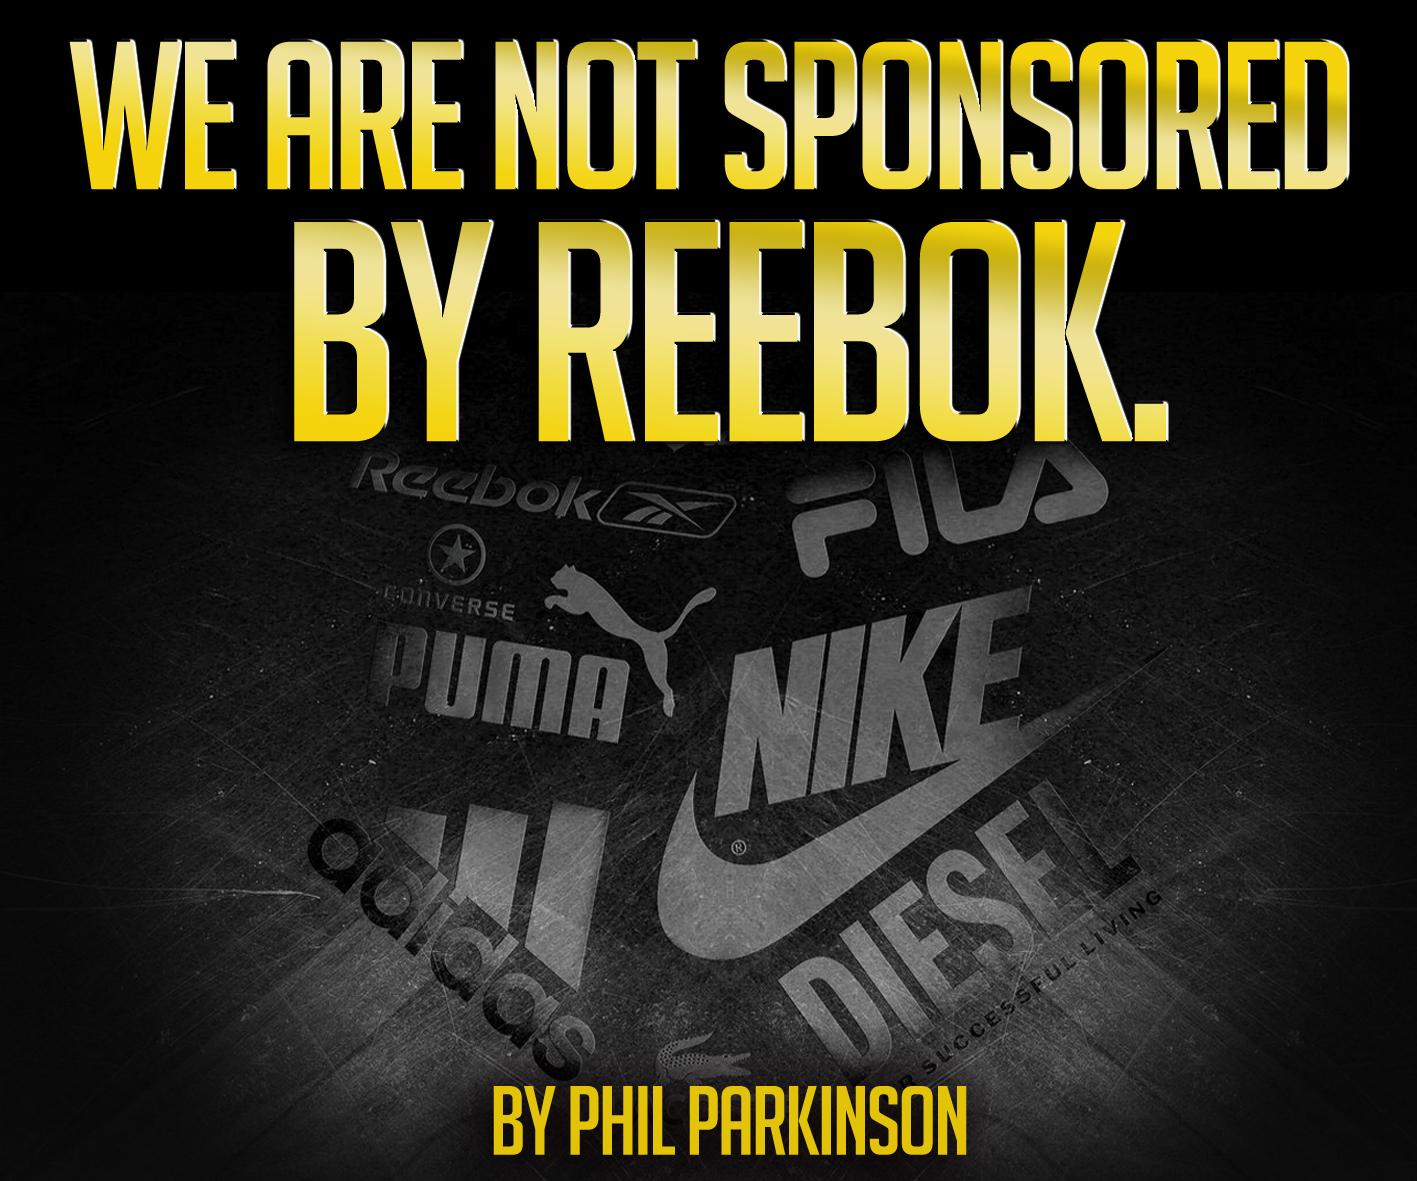 Beneficiario Culpable Dato  The Ultimate Fitness Blog: We are not sponsored by Reebok